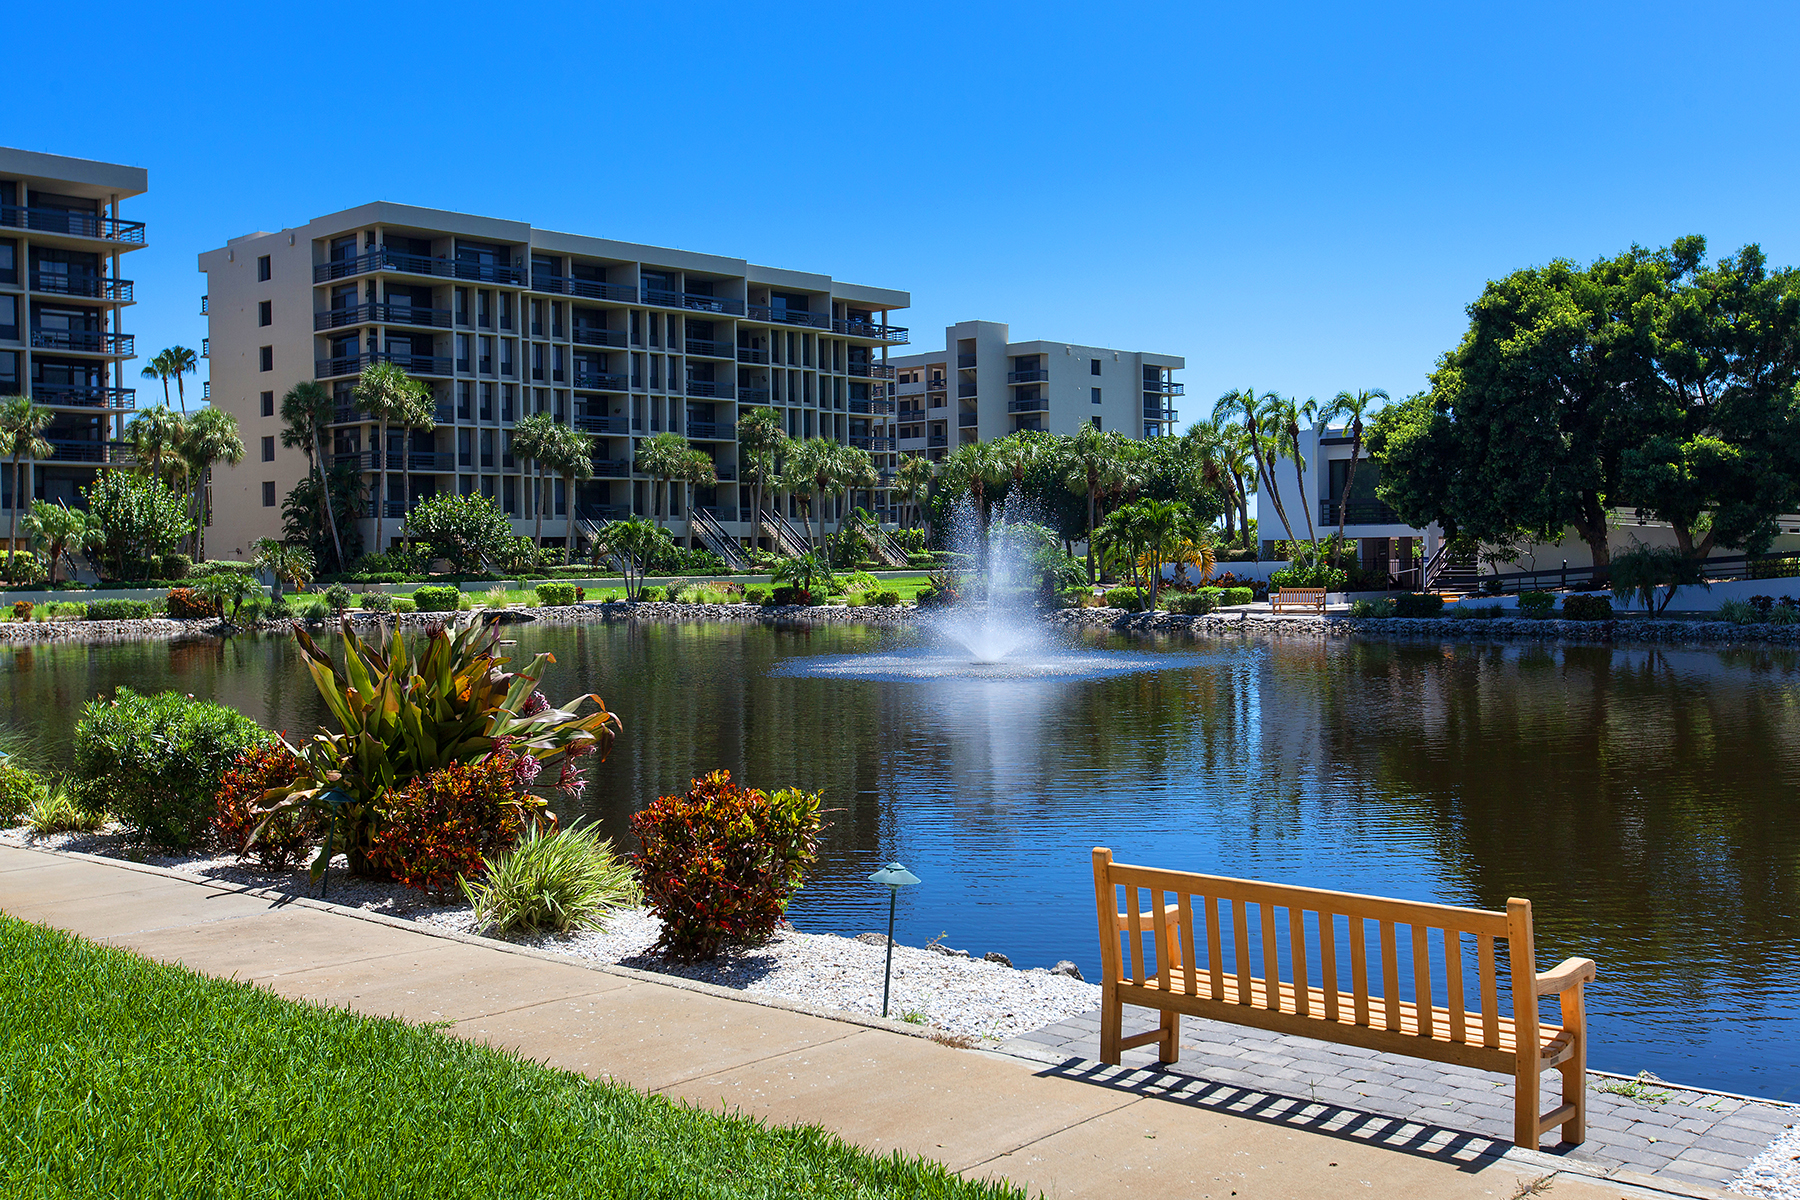 Condominium for Sale at BEACHPLACE 1075 Gulf Of Mexico Dr 103 Longboat Key, Florida, 34228 United States